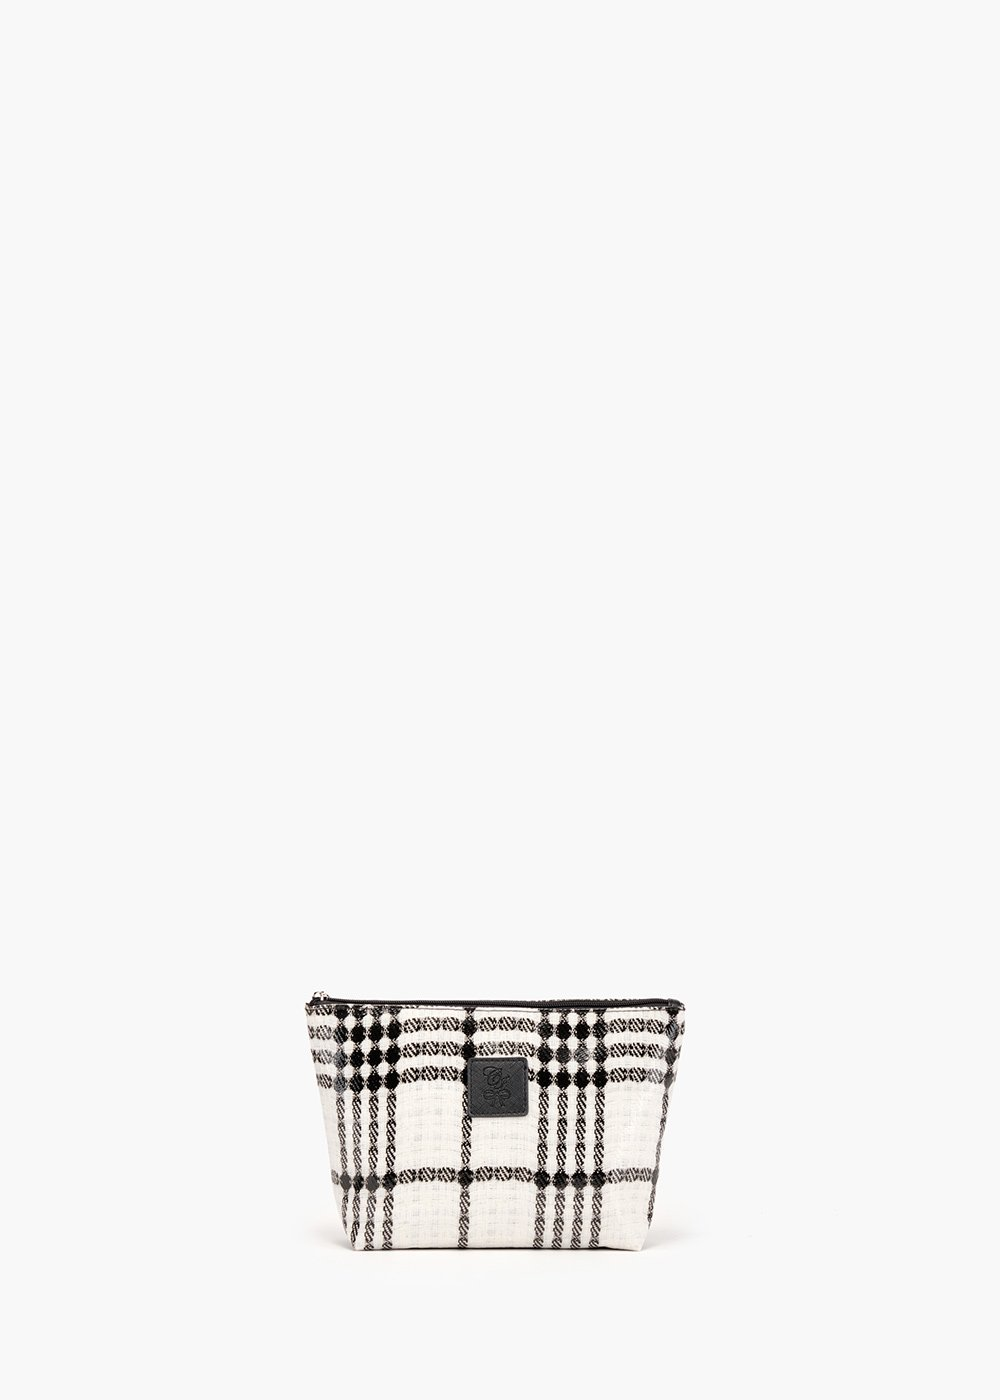 Beauty Bali Tartan in tartan fabric with zip closure - White / Black Fantasia - Woman